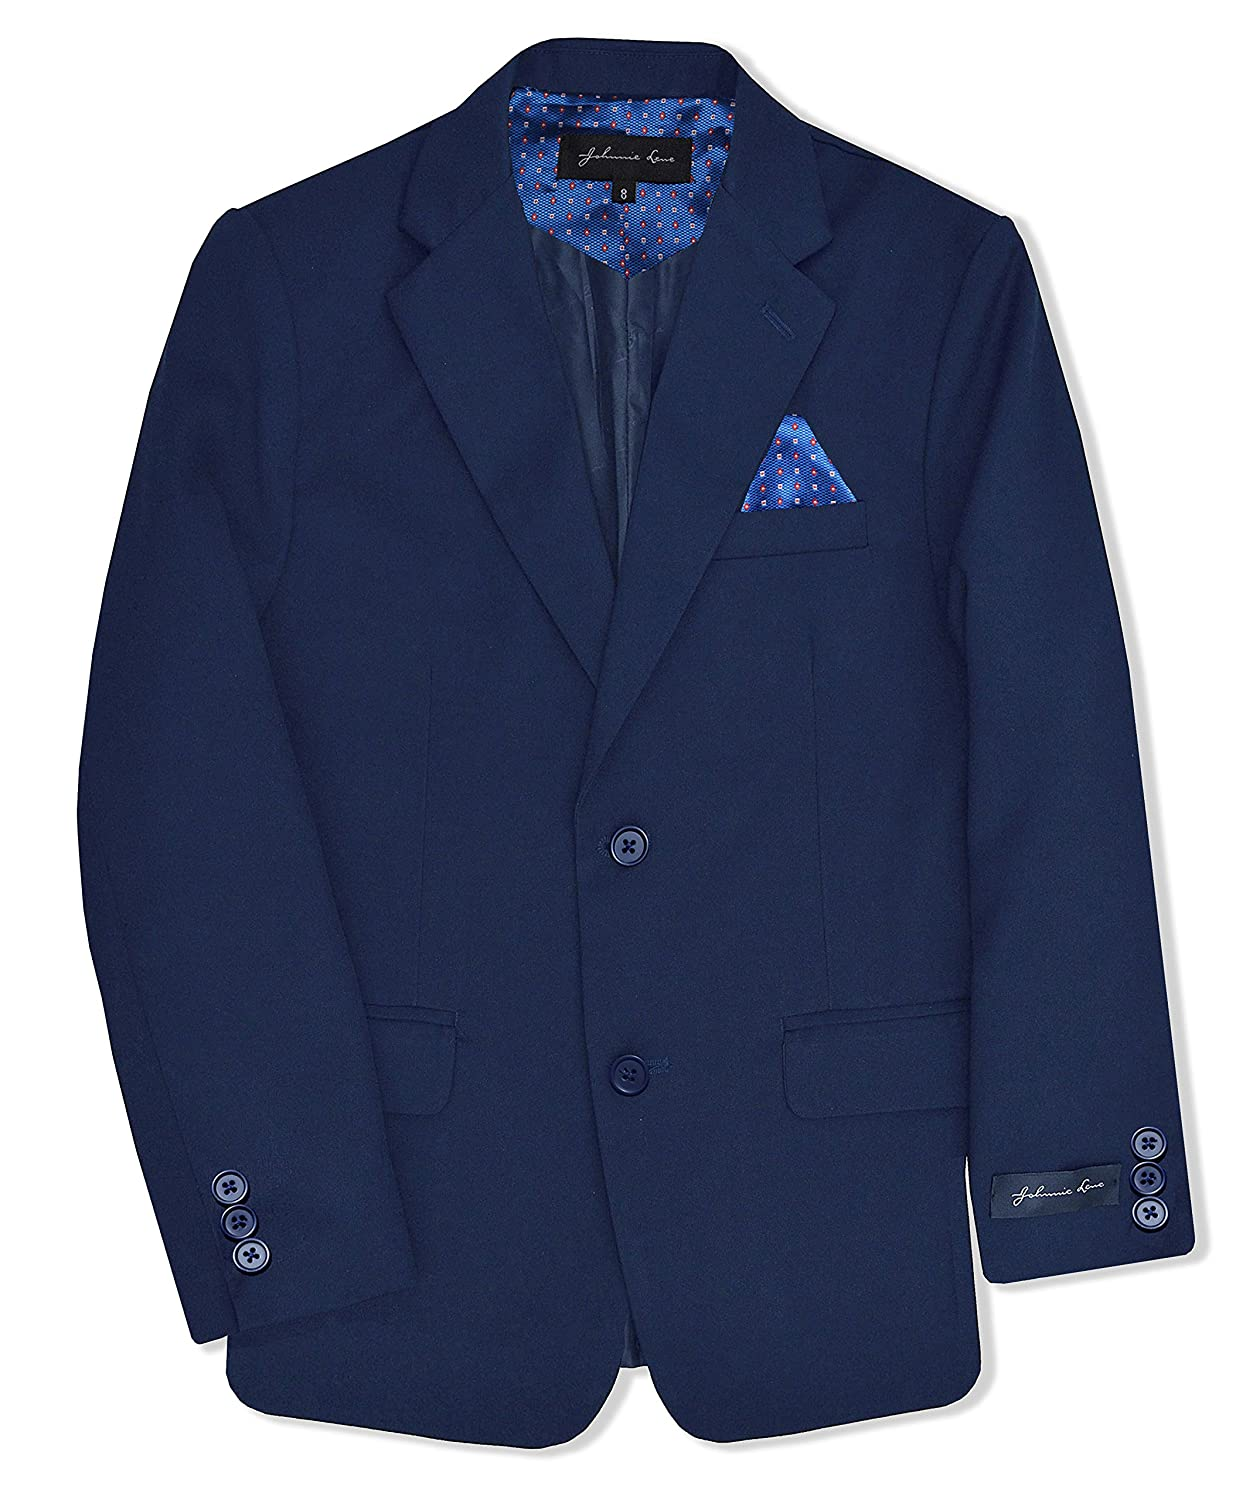 Johnnie Lene Dress Up Boys' Blazer Jacket